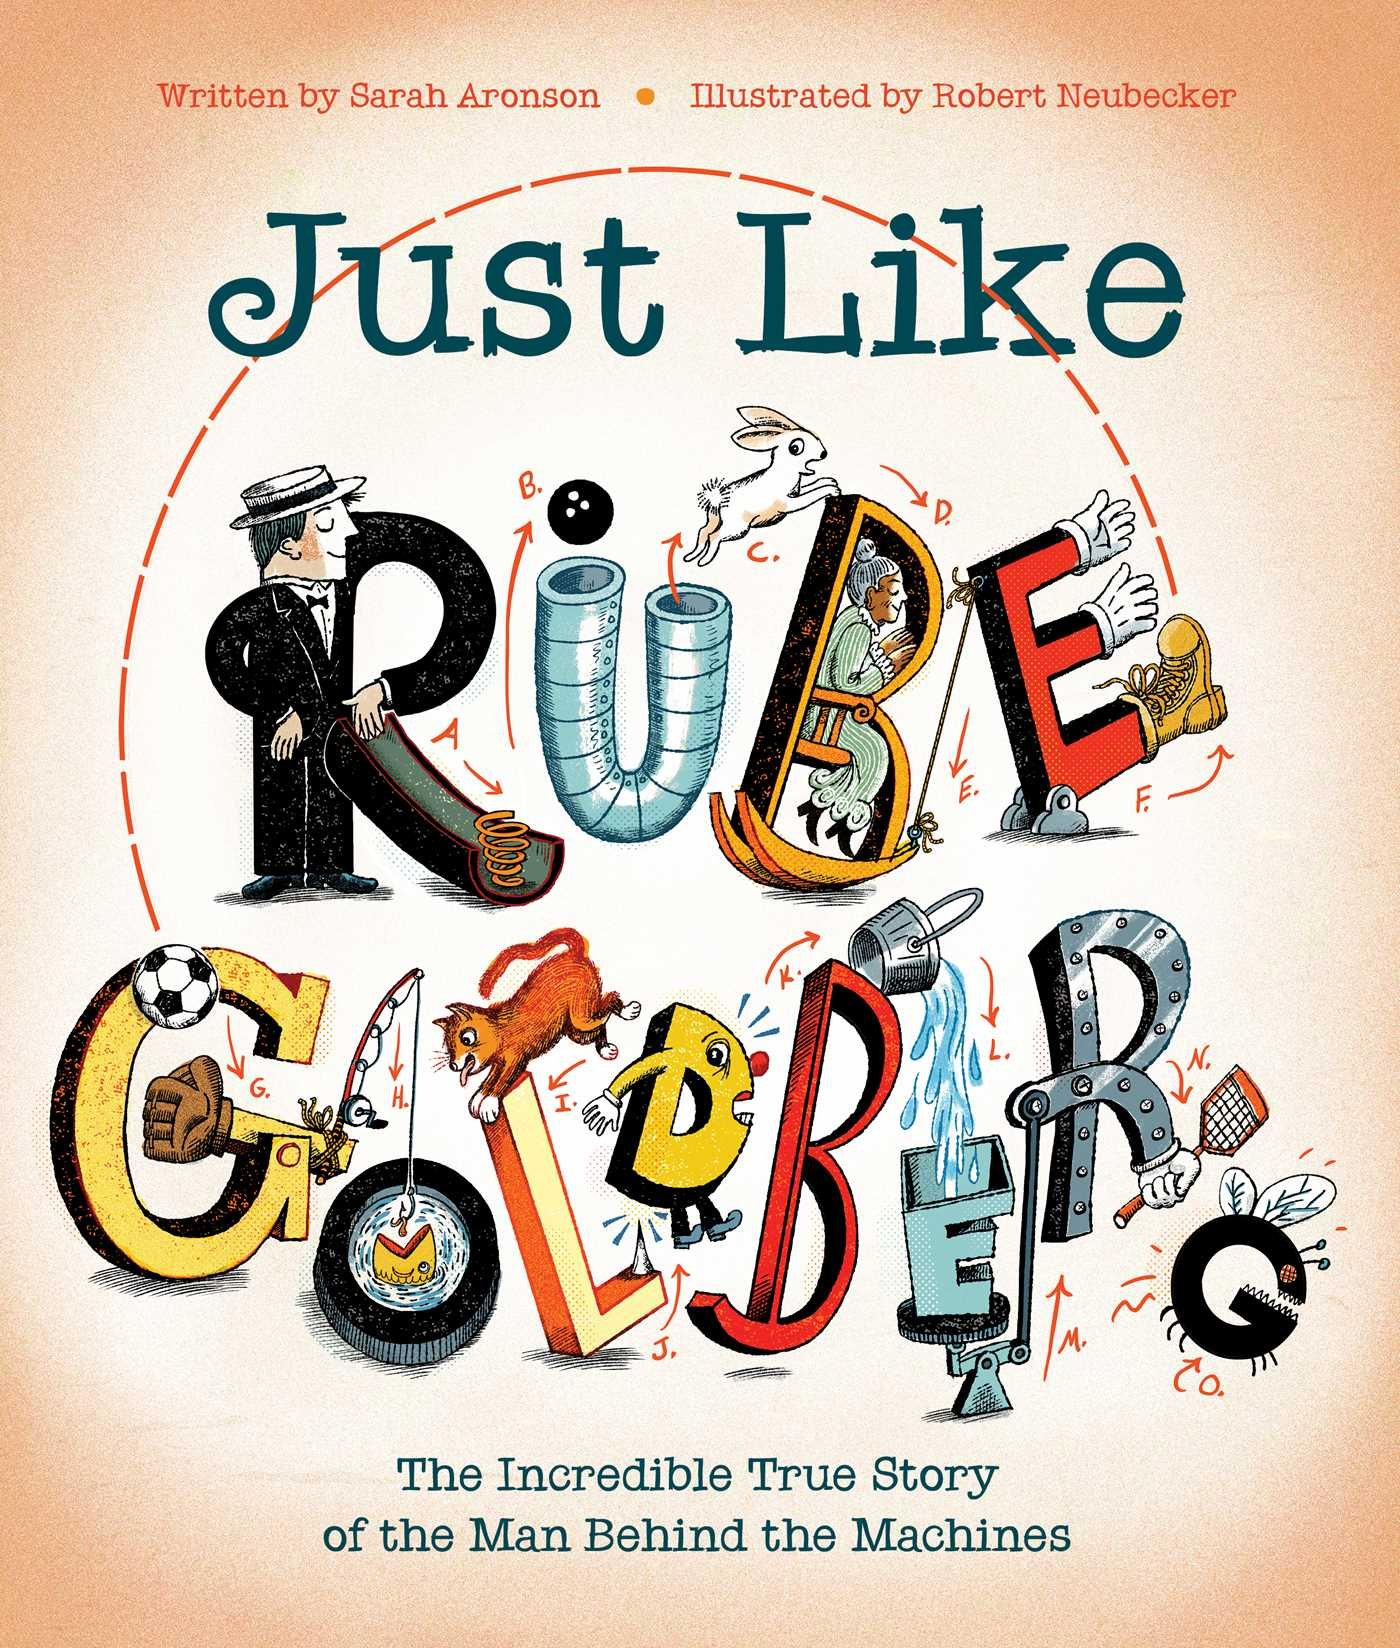 Read: Just Like Rube Goldberg: The Incredible True Story of the Man Behind the Machines, by Sarah Aronson and Robert Neubecker